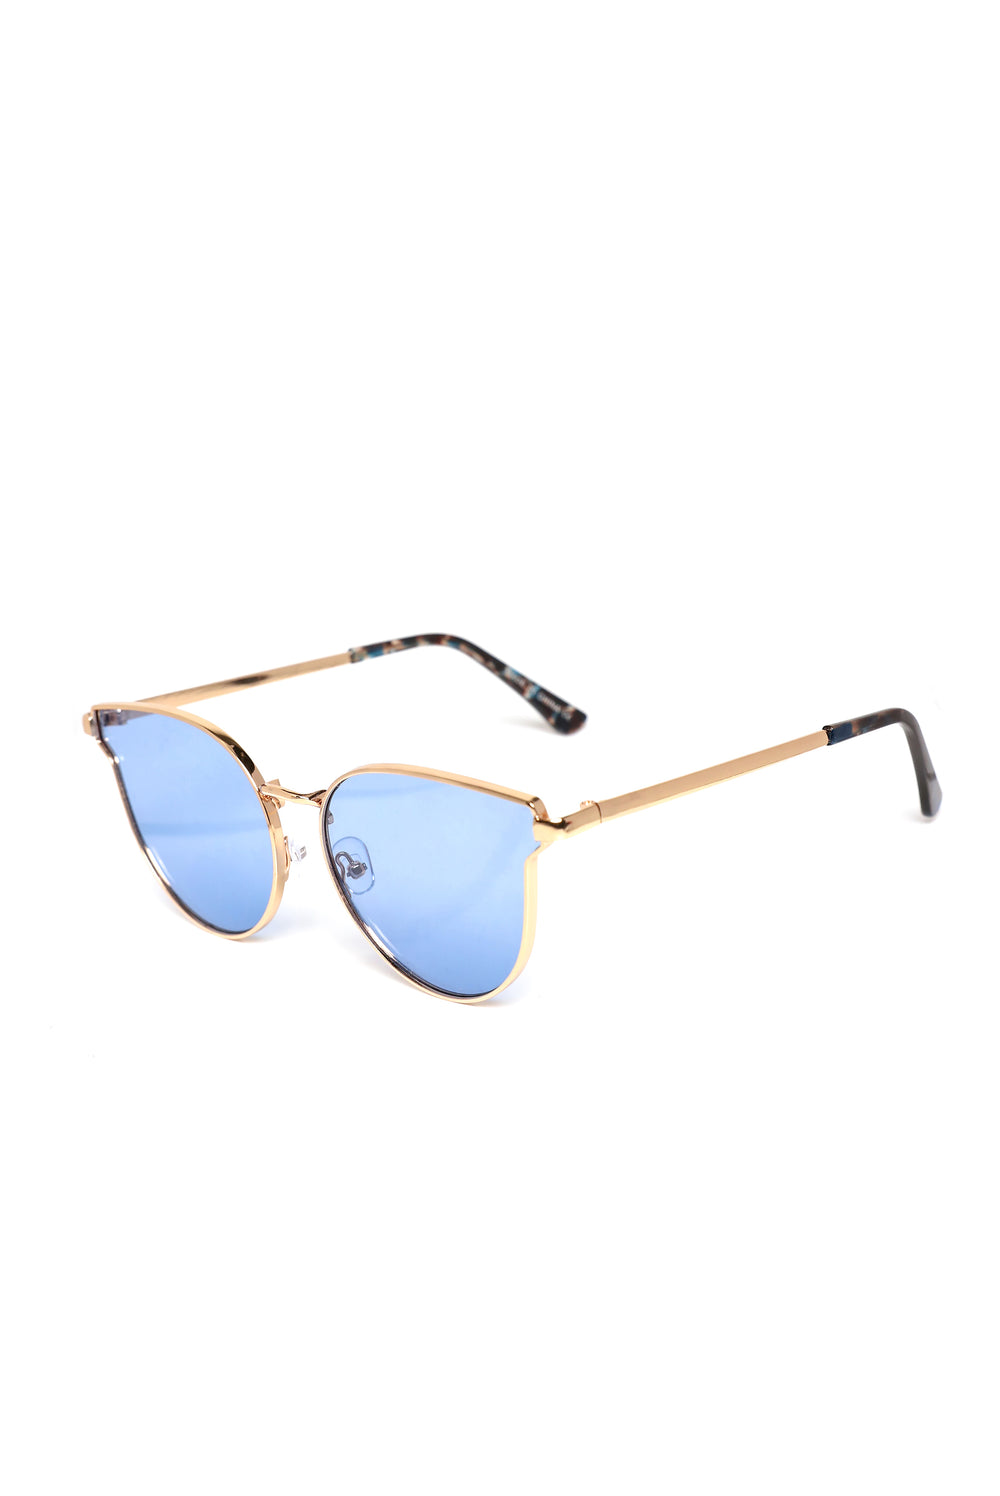 Sunrise Beach Sunglasses - Gold/Blue